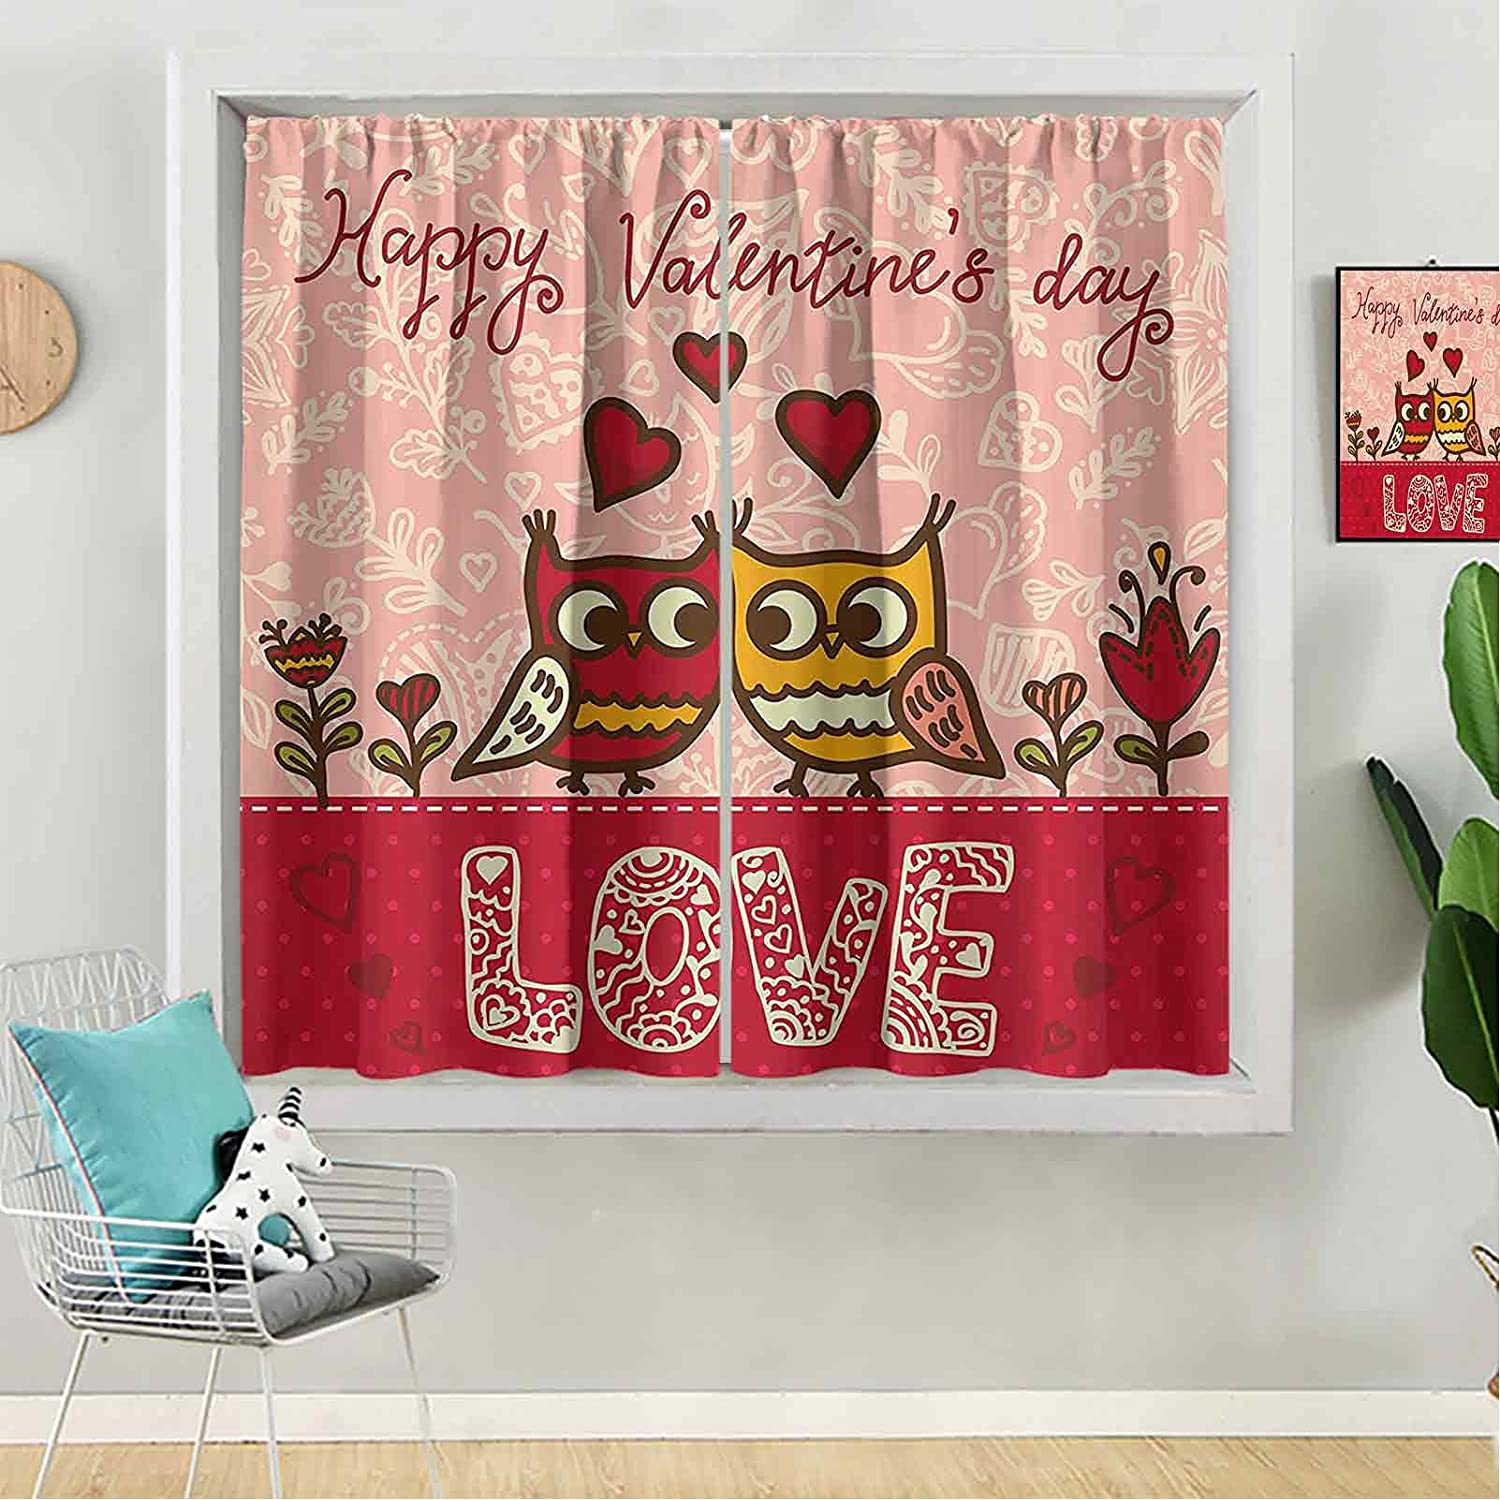 Superior Max 70% OFF Blackout Curtain 72 inches Long Panel for B Kids Window